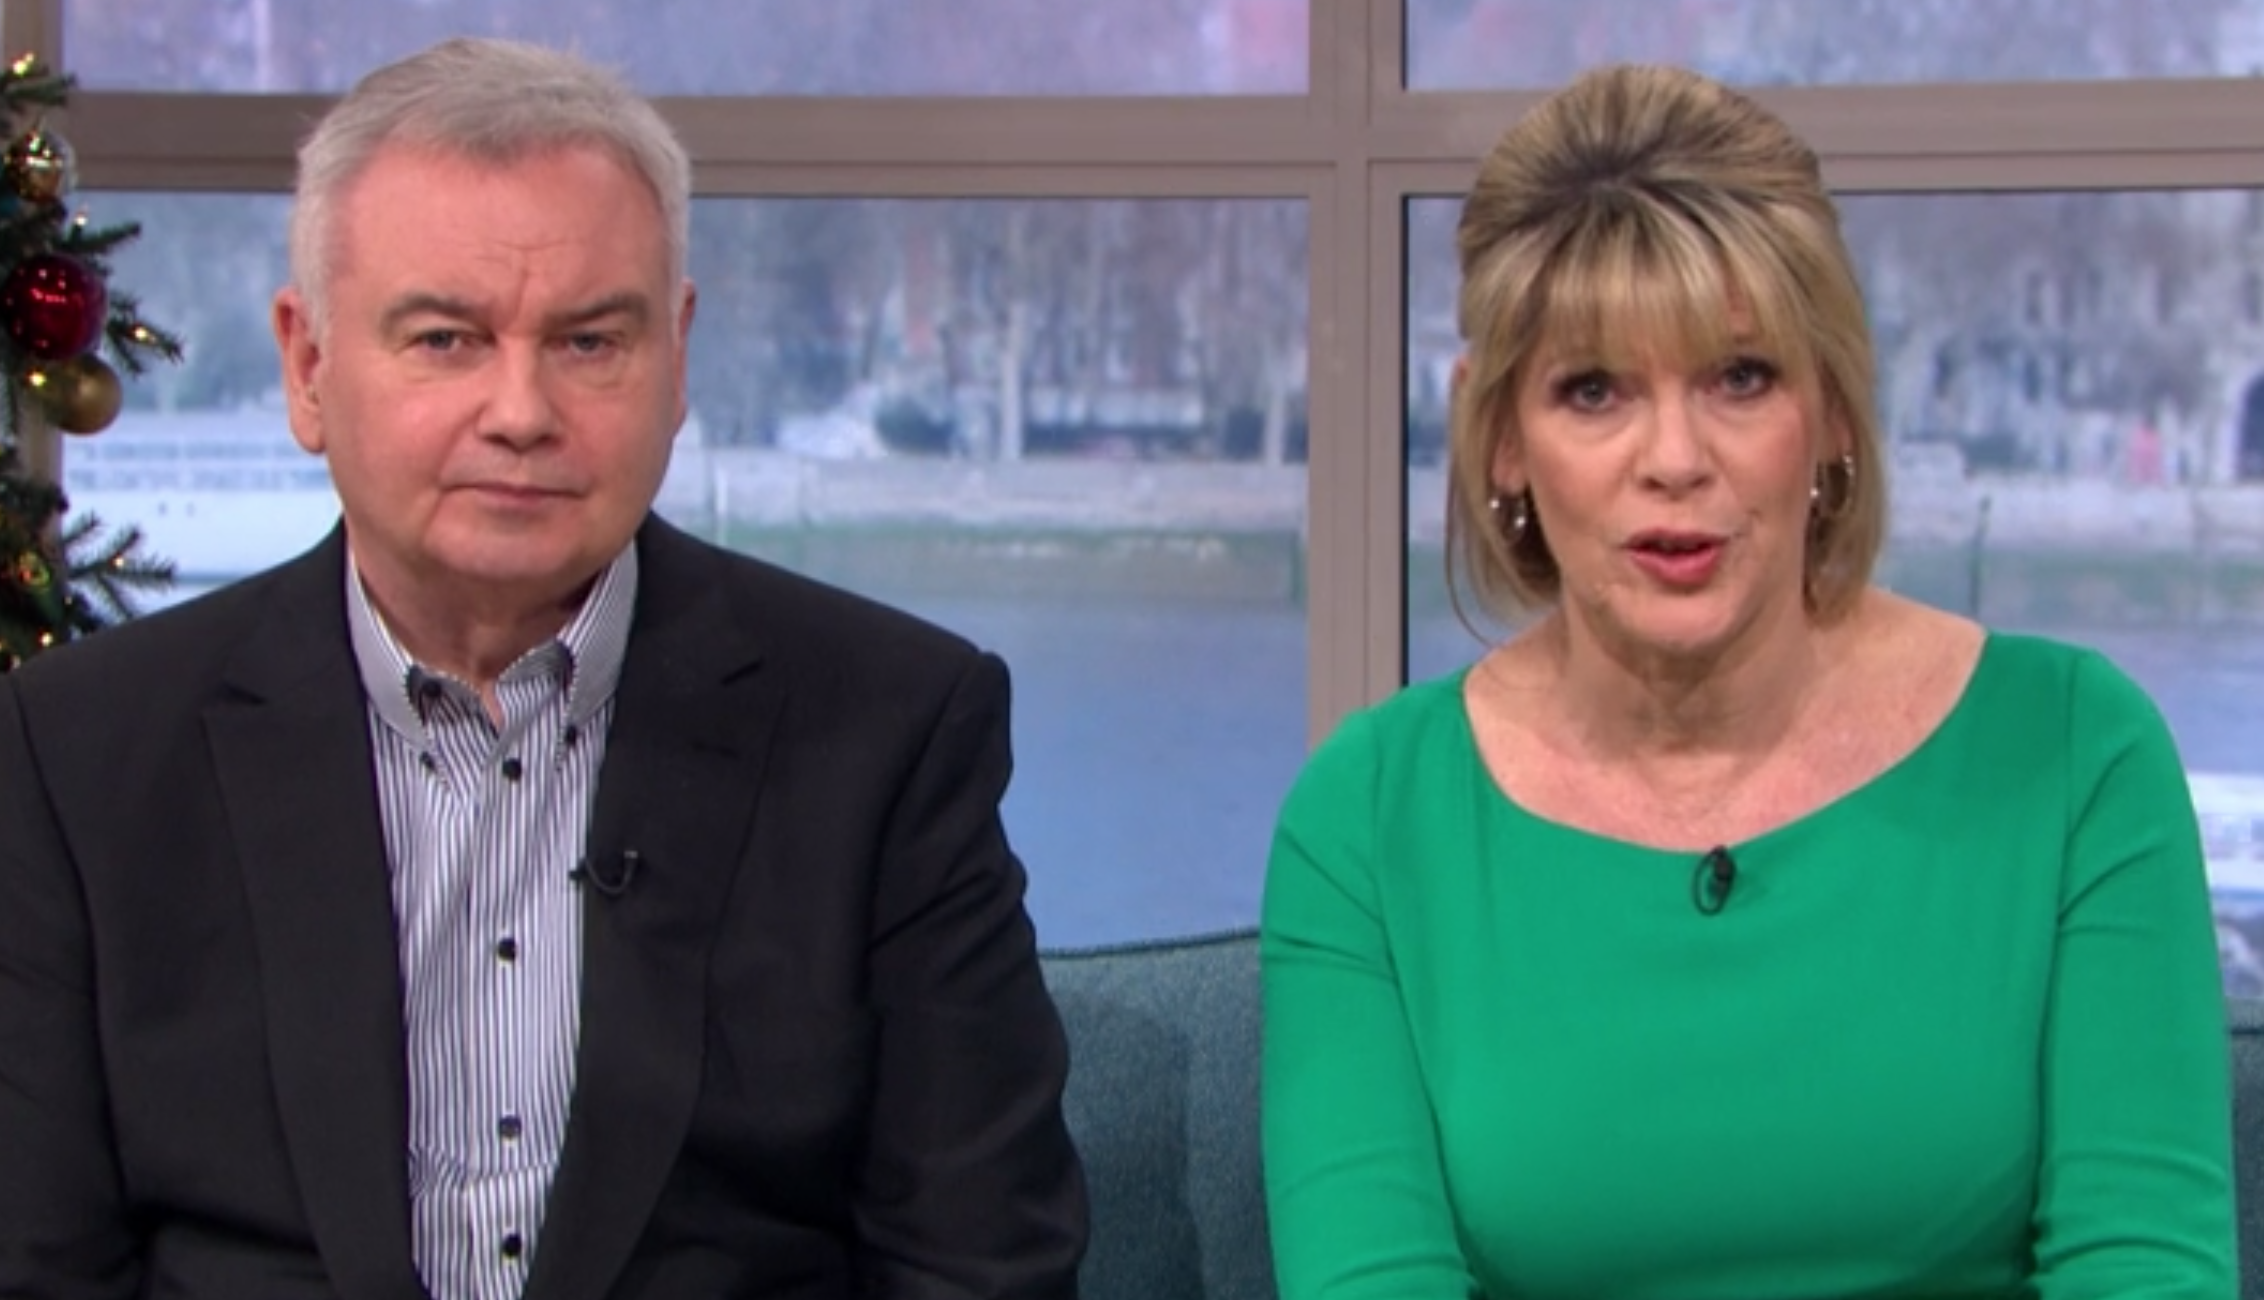 This Morning viewers blast 'rude' guest who snapped at Eamonn Holmes during debate